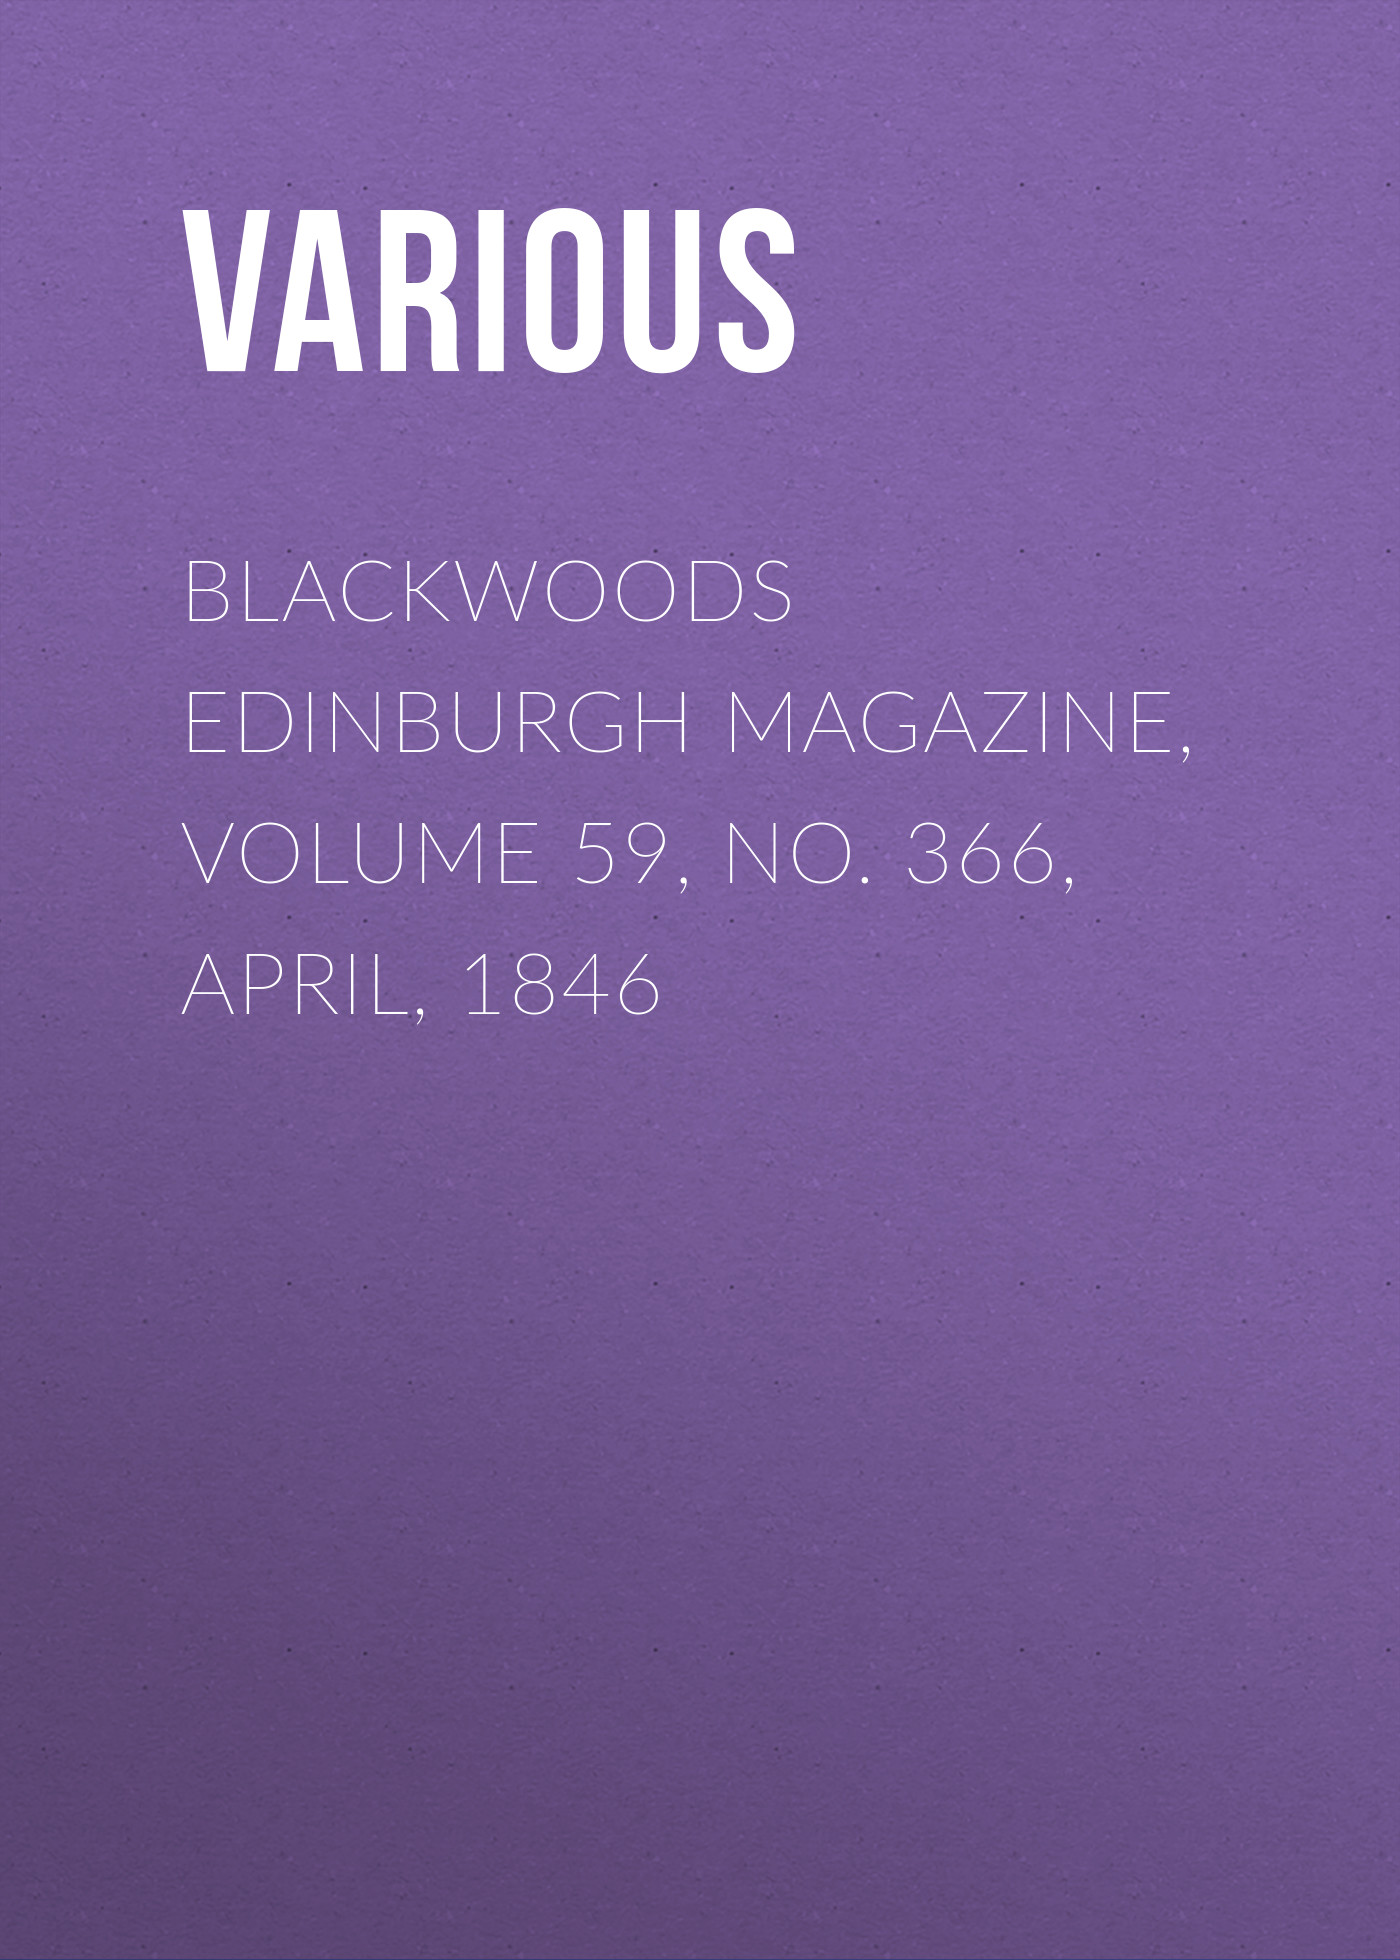 Various Blackwoods Edinburgh Magazine, Volume 59, No. 366, April, 1846 цена